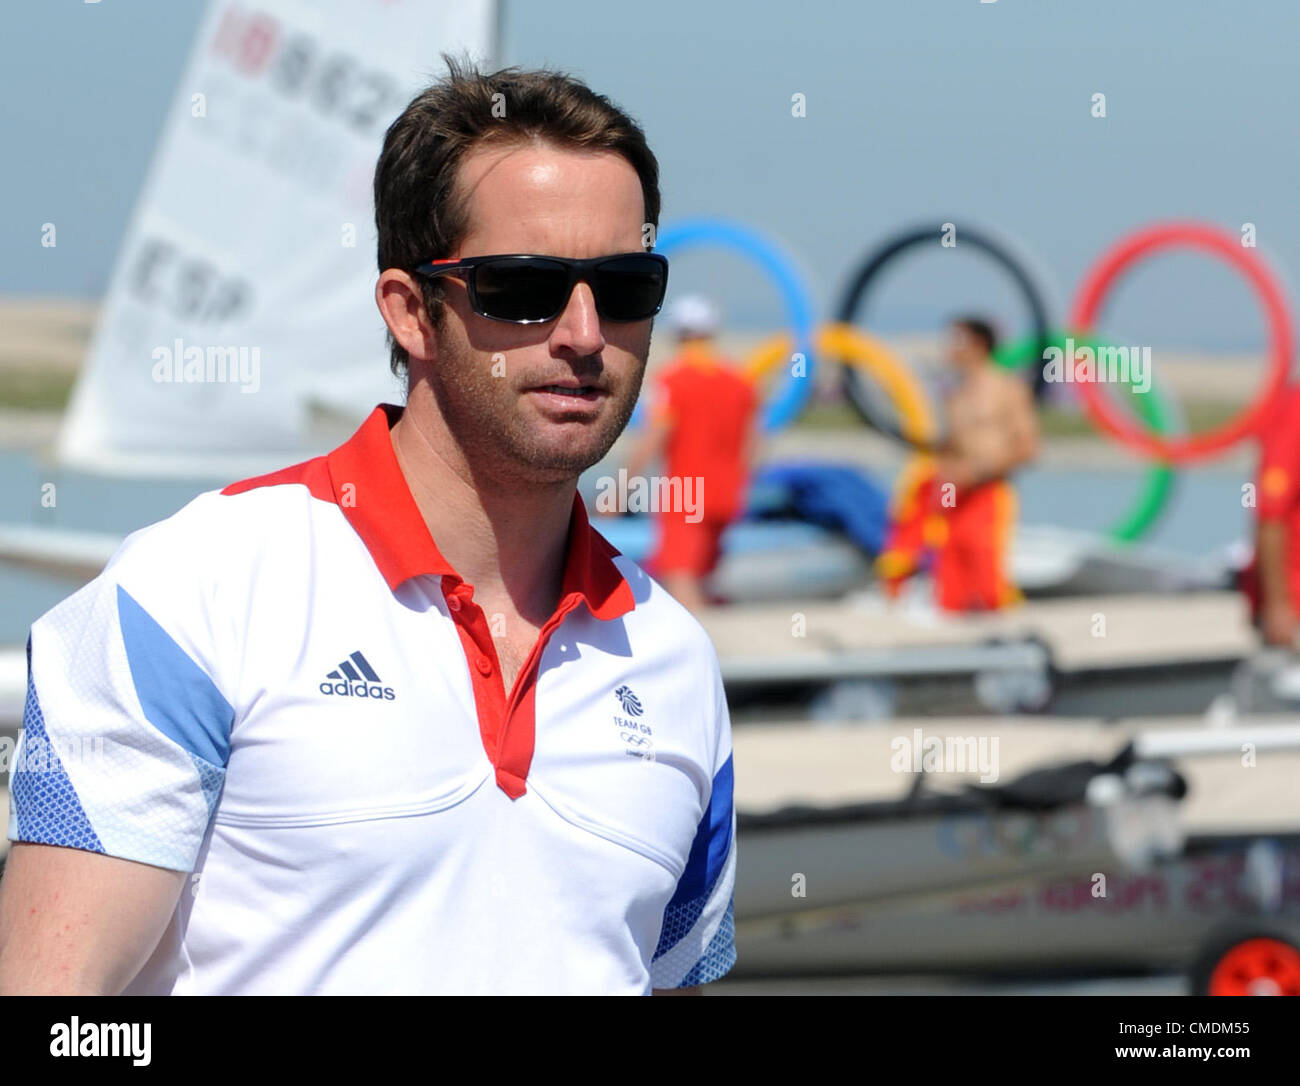 Ben Ainslie at 2012 Olympic Games Stock Photo